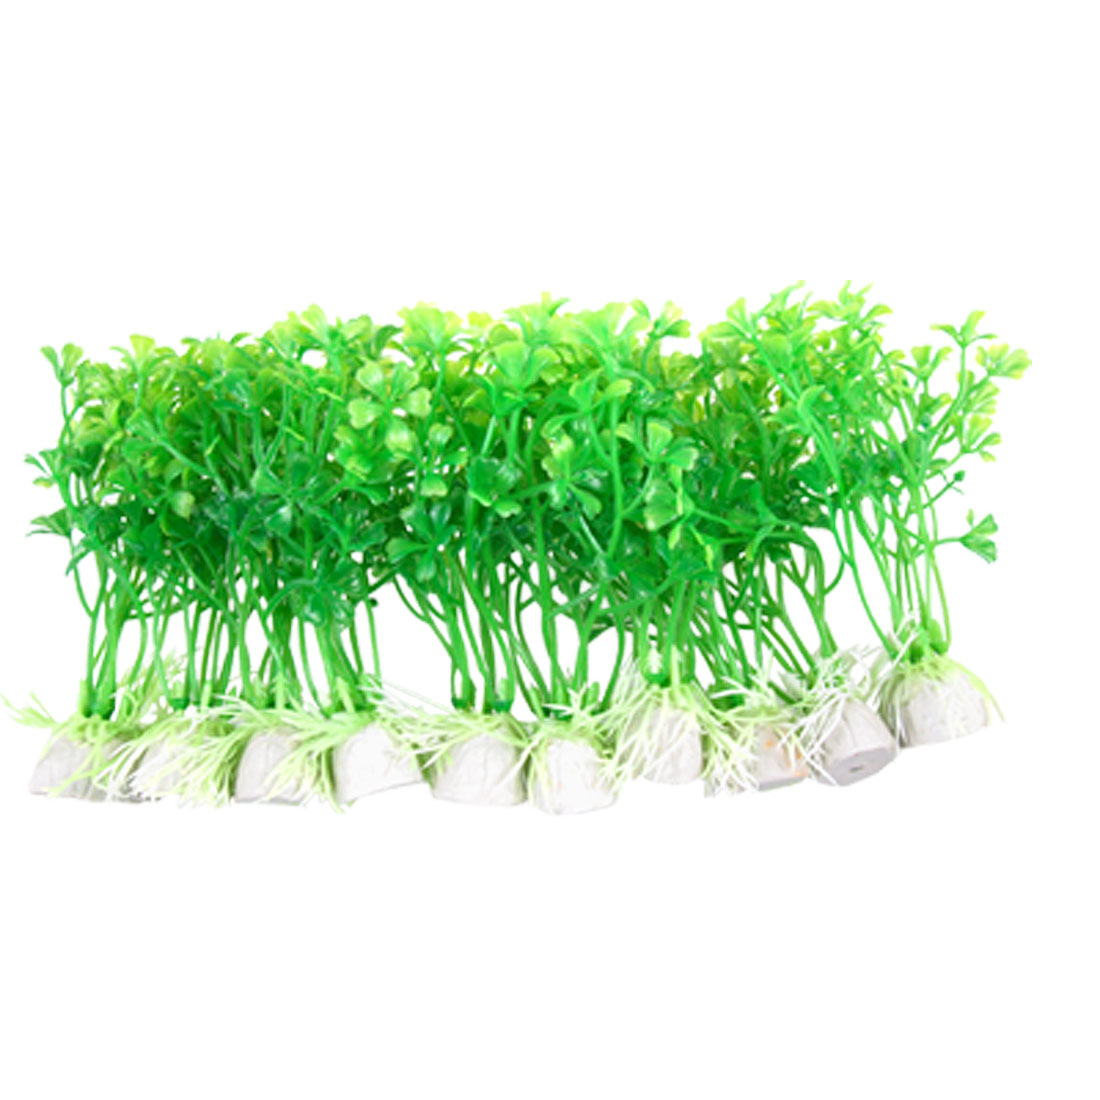 Navy Green Vivid Ceramic Base Plastic Plants 10 PCS Fish Tank